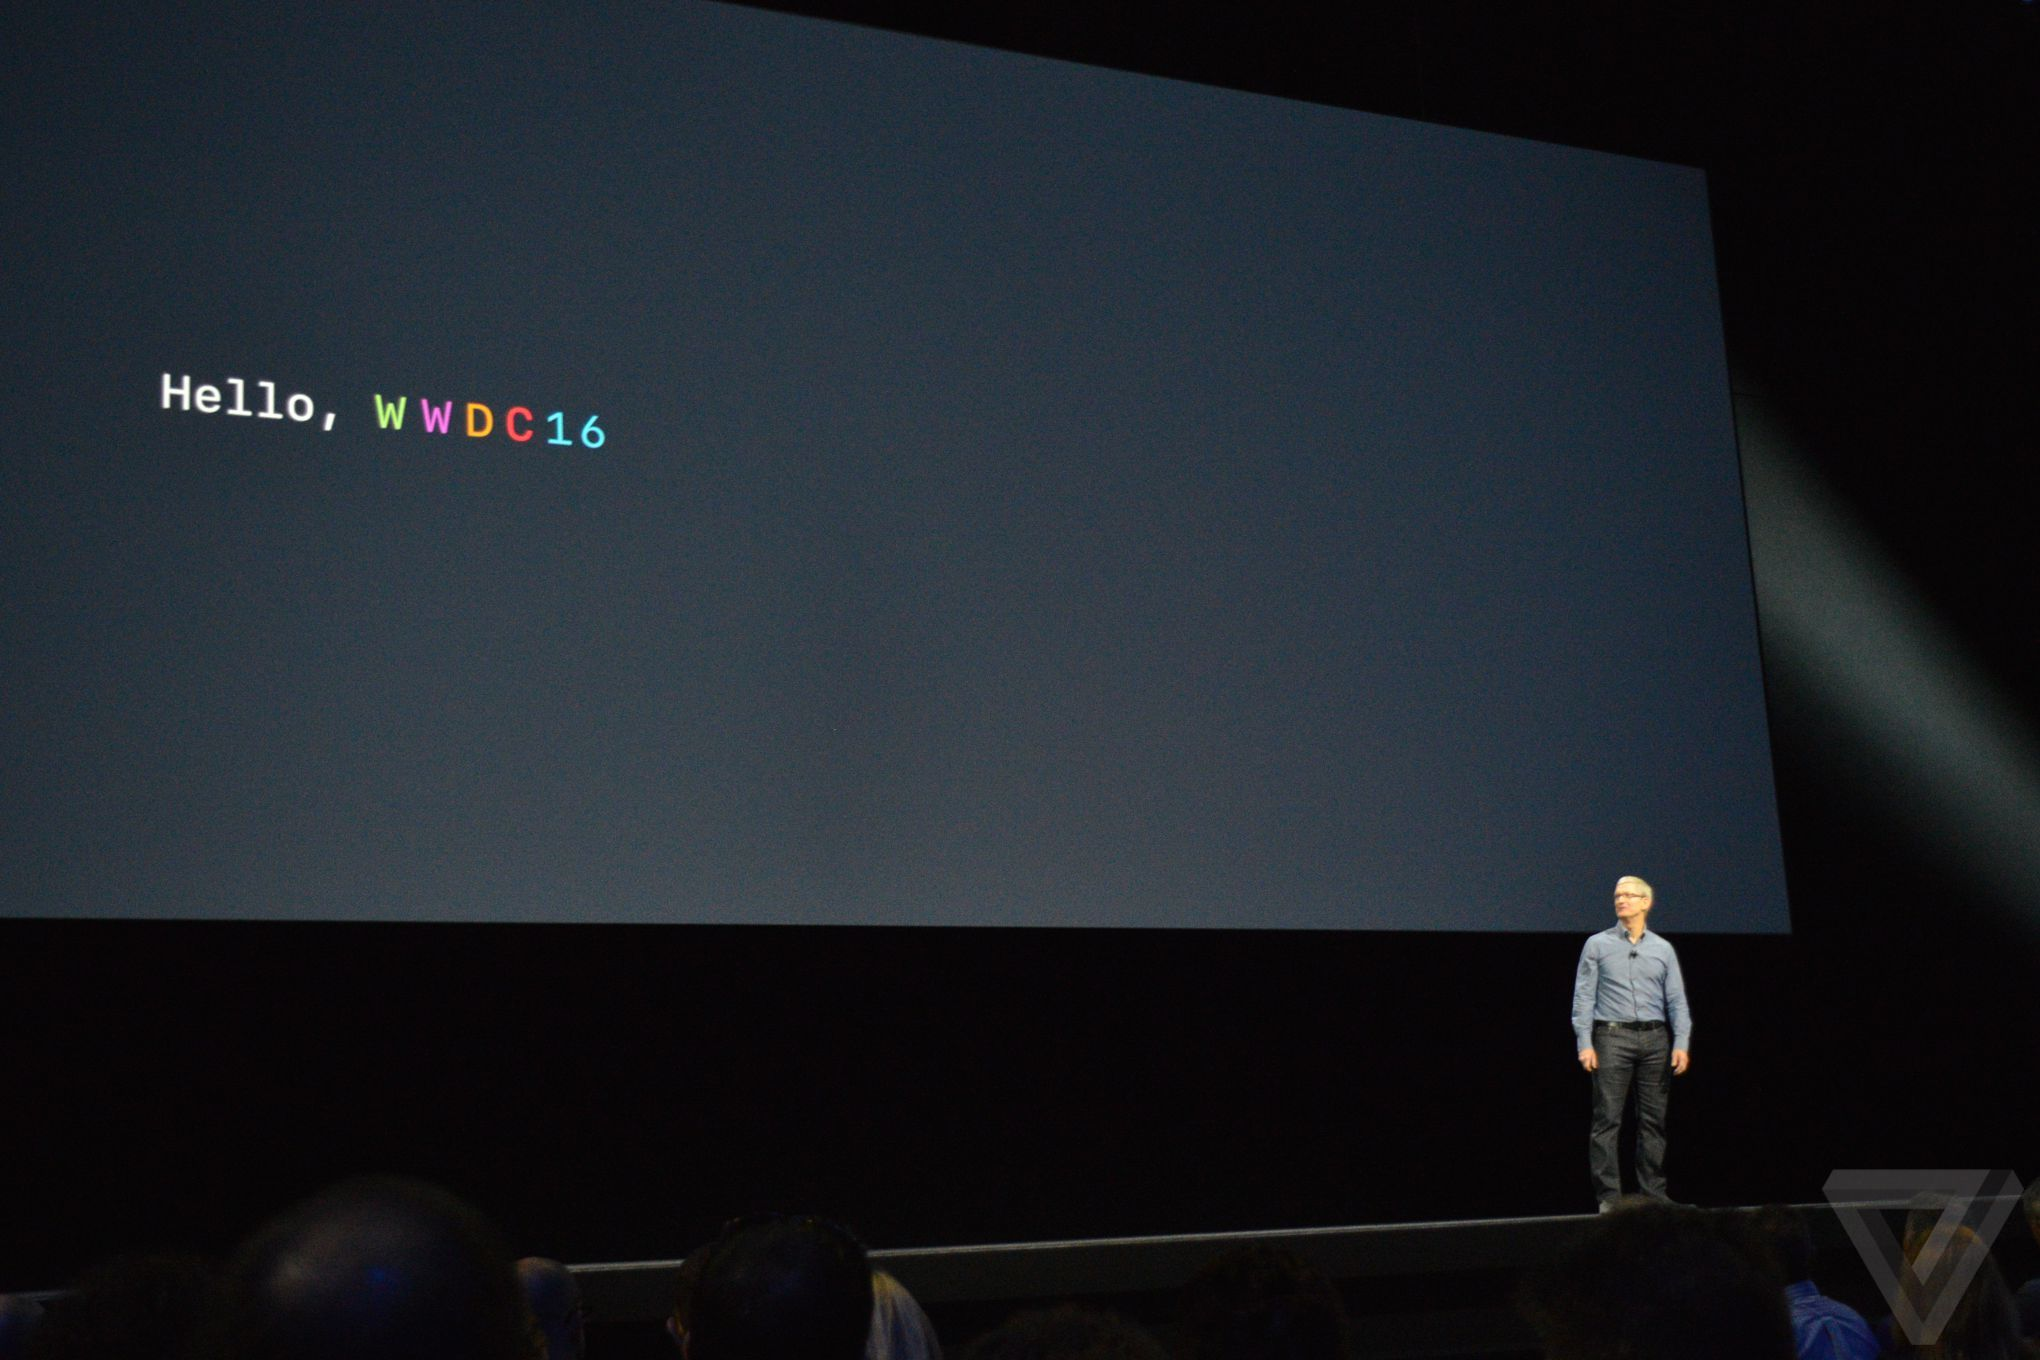 WWDC 2016 Live Blogging: Lansare iOS 10, OS X 10.12, MacBook Pro 2016 si Apple Watch 2 - imaginea 8